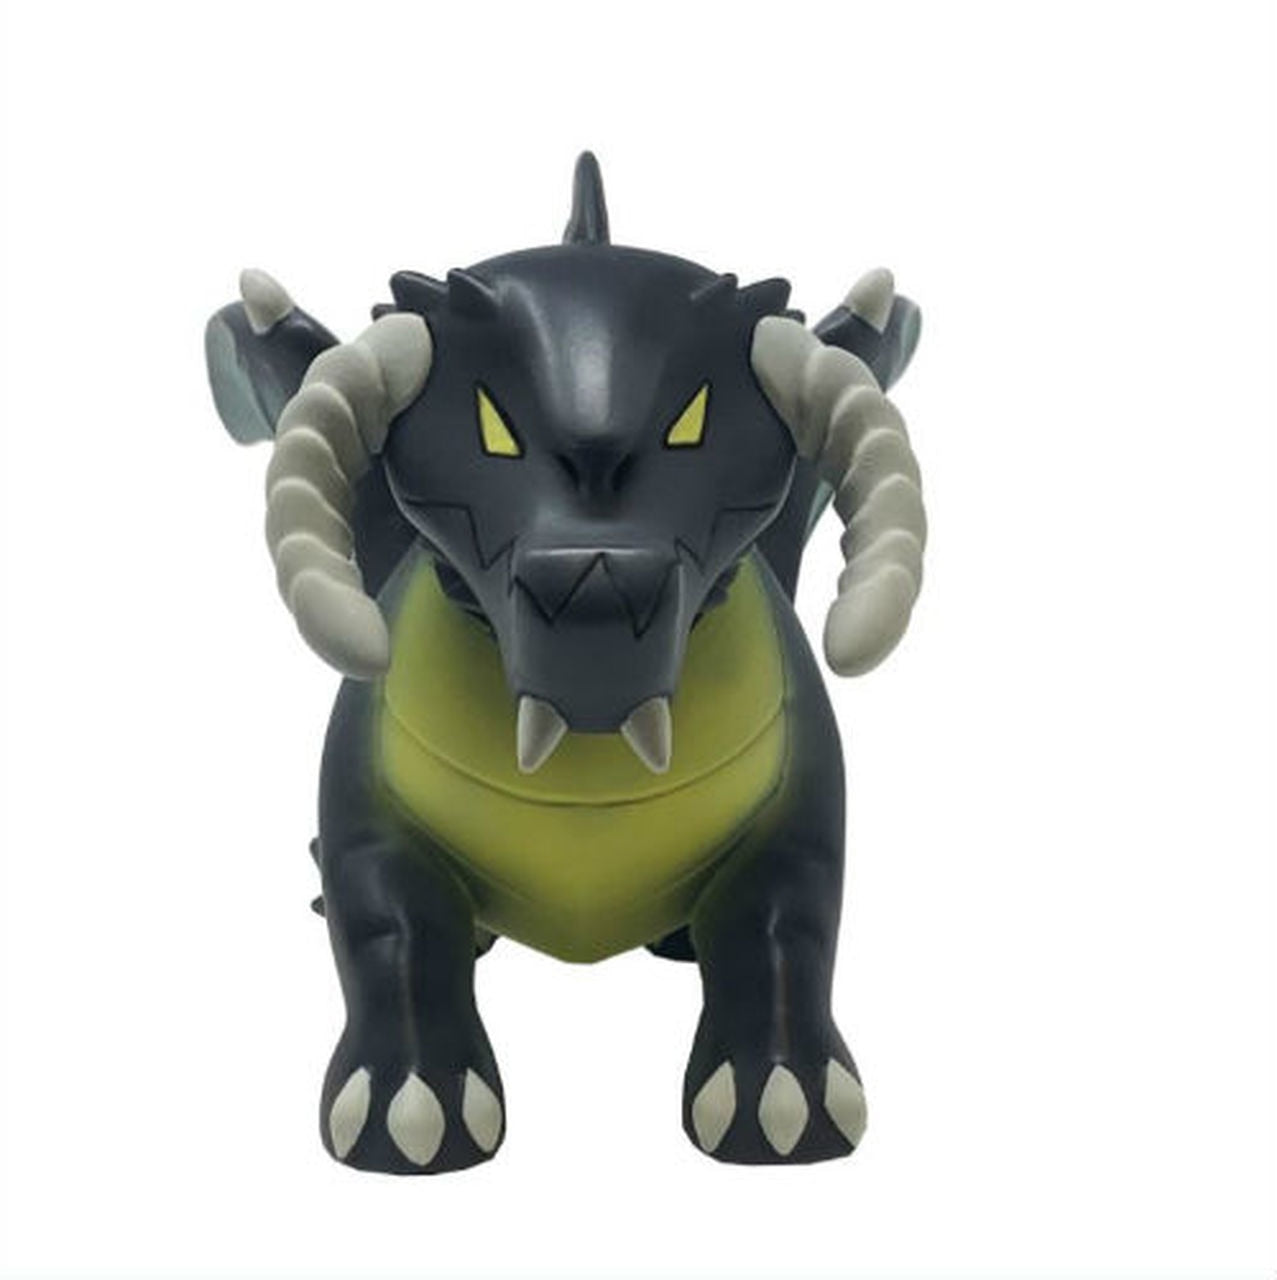 Figurines of Adorable Power - Black Dragon